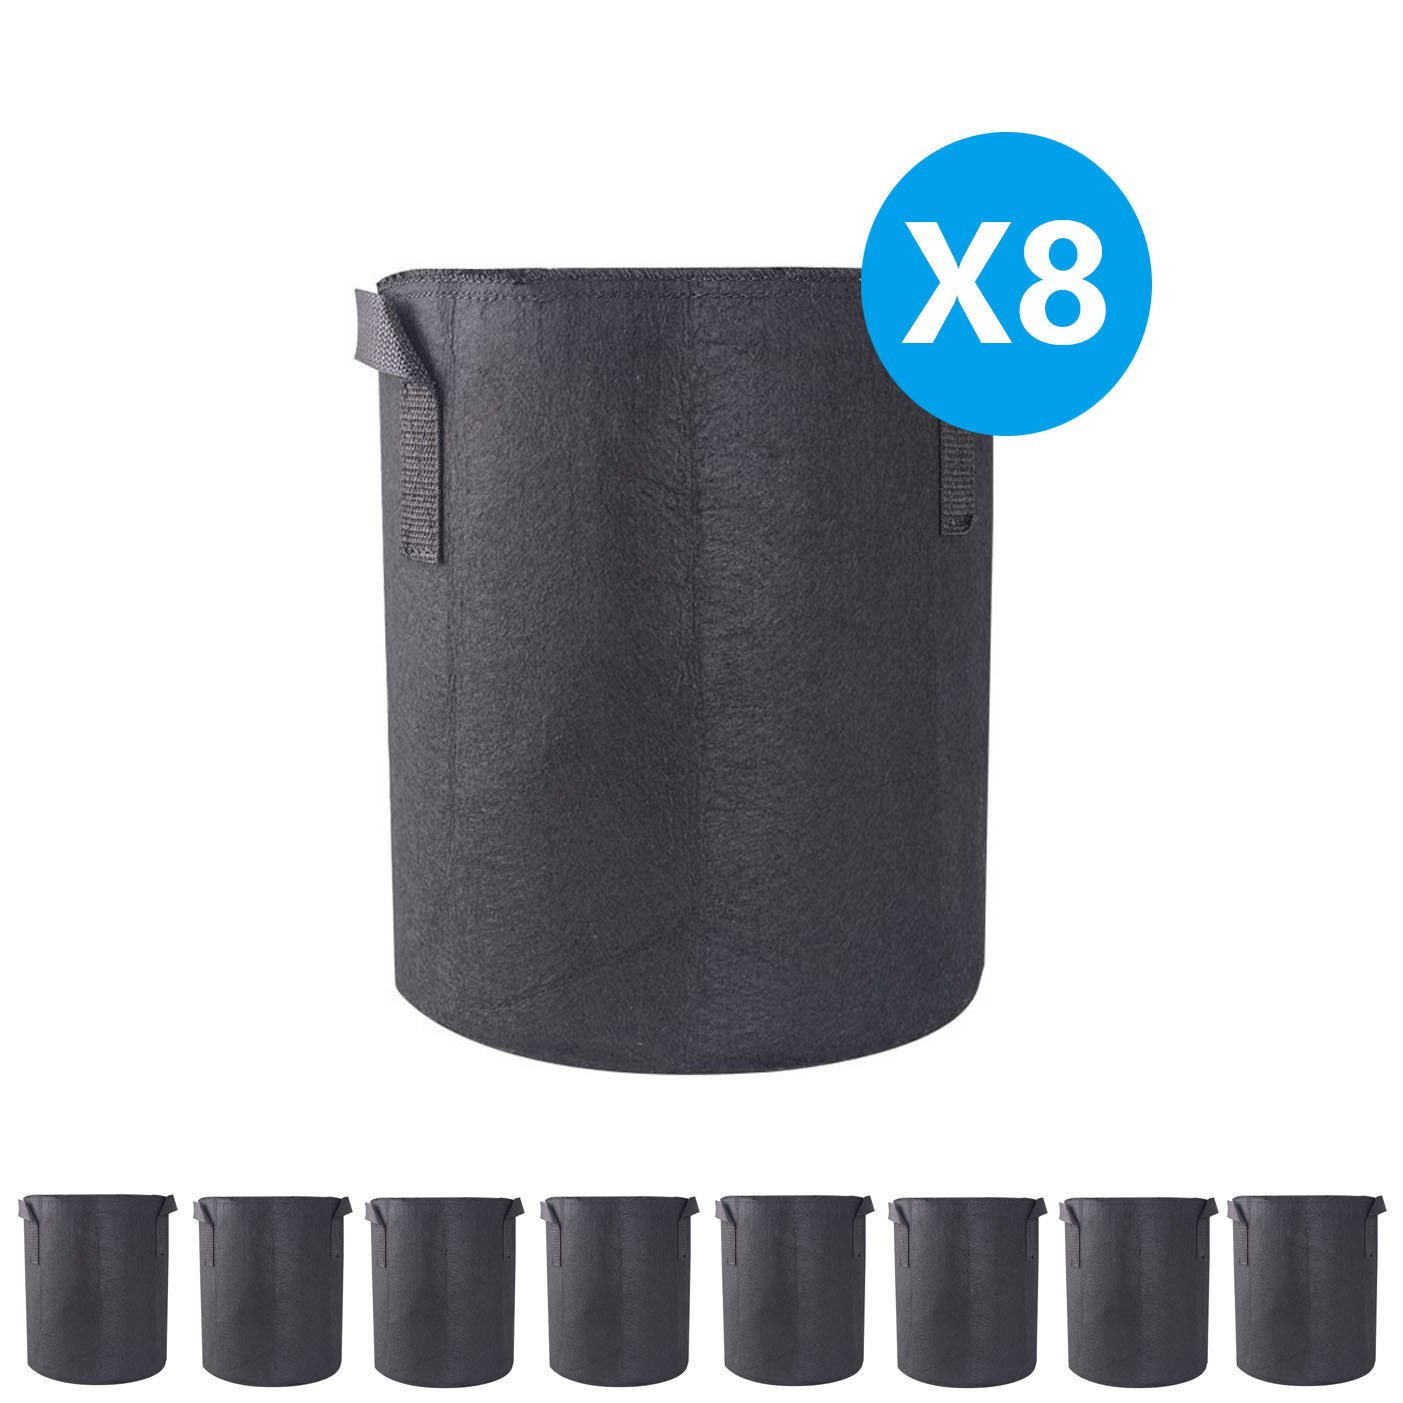 A1KINGDOM 8-PACK 3 Gallon Grow Bags Heavy Duty Thickened Non-woven Smart Plant Aeration Fabric Pots Containers with Handles for Nursery Garden and Planting by A1KINGDOM